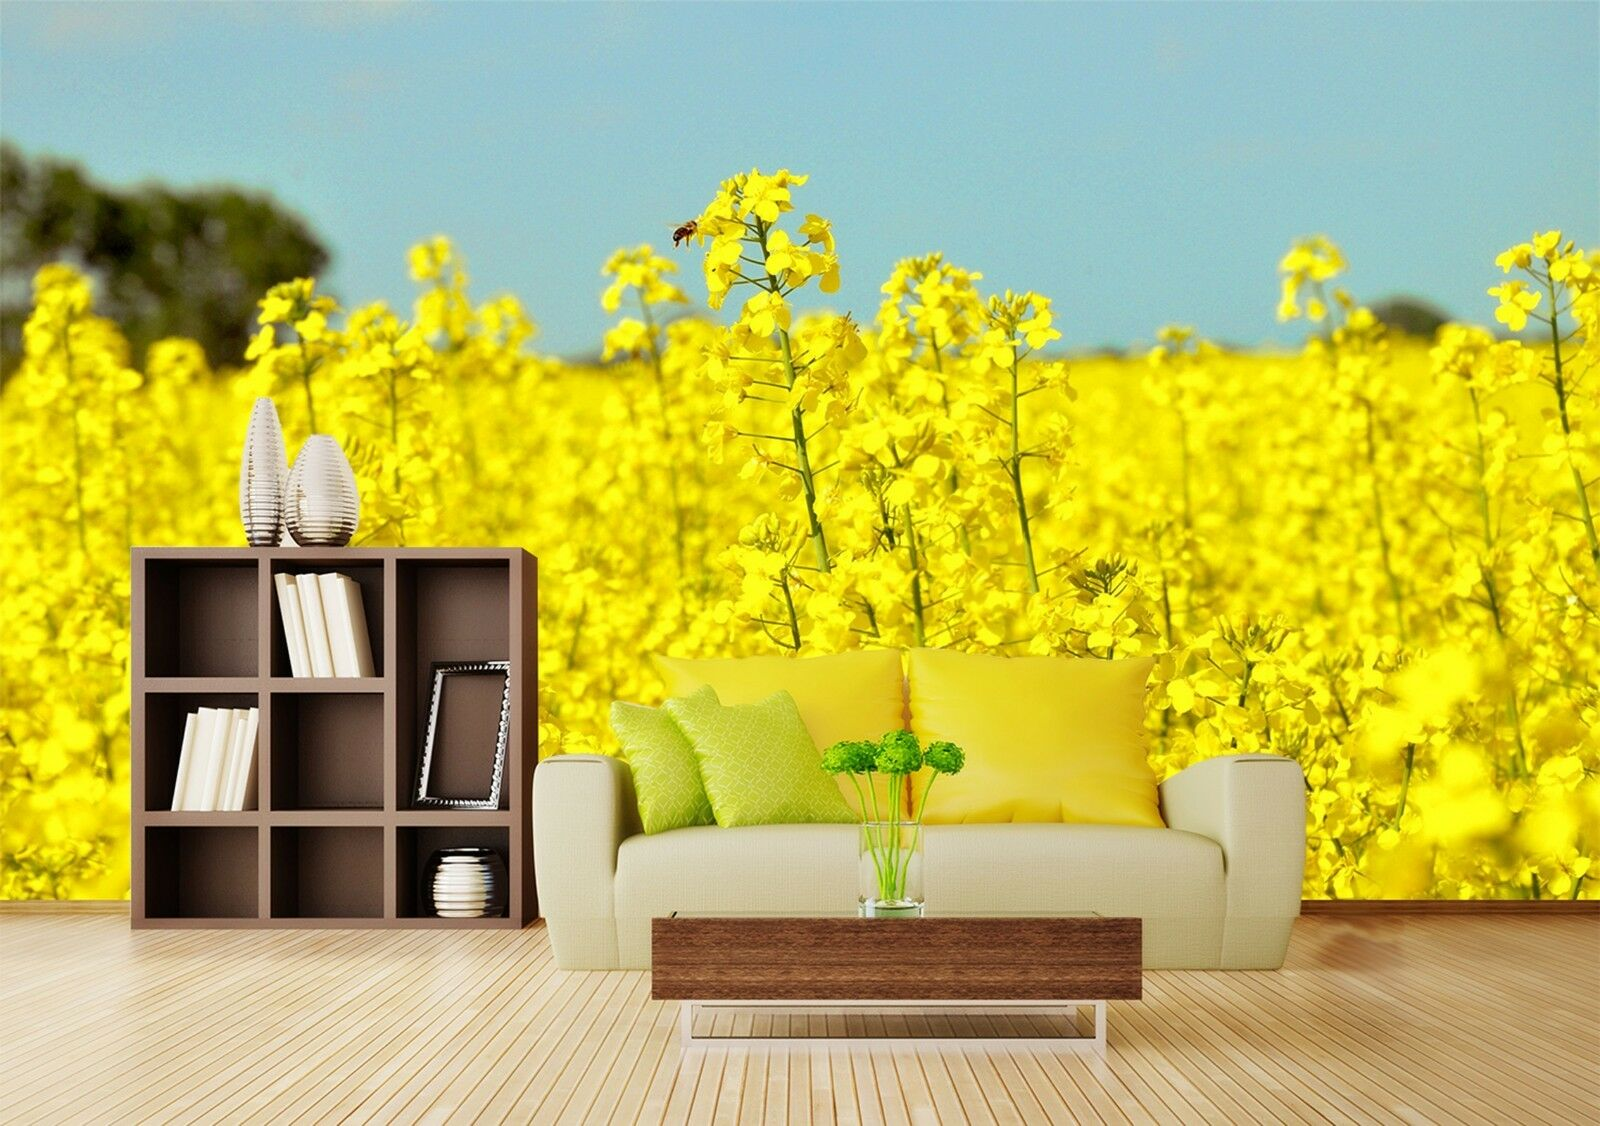 3D Rape field Wall Paper wall Print Decal Wall Deco Indoor wall Mural